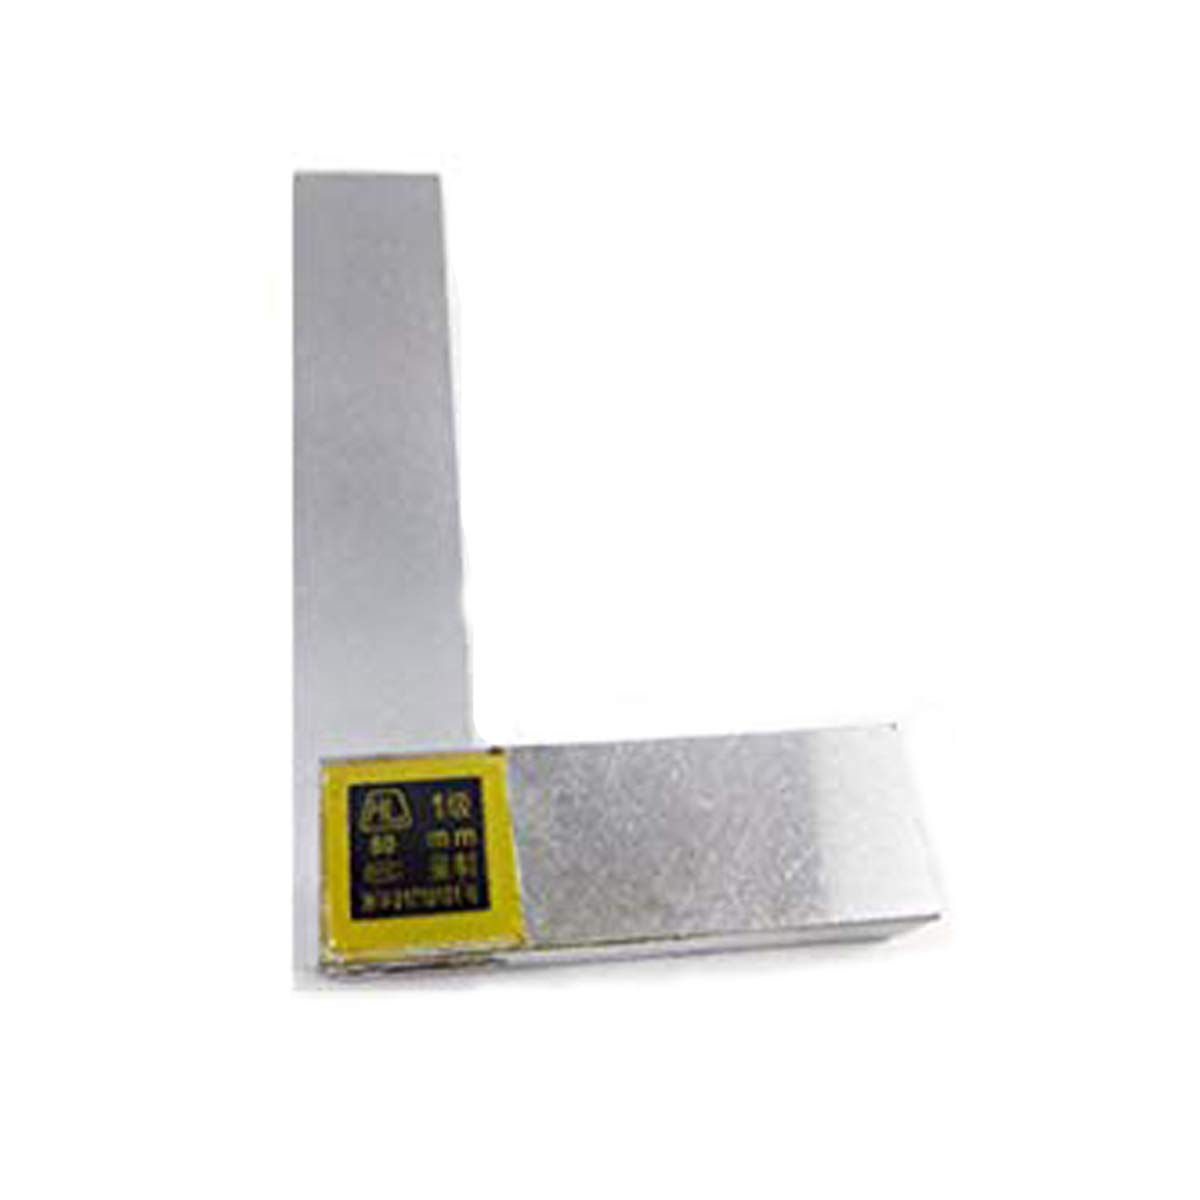 XMHF 80mmx50mm L Shaped Non marked Bevel Edge Square Welding Ruler Gauge